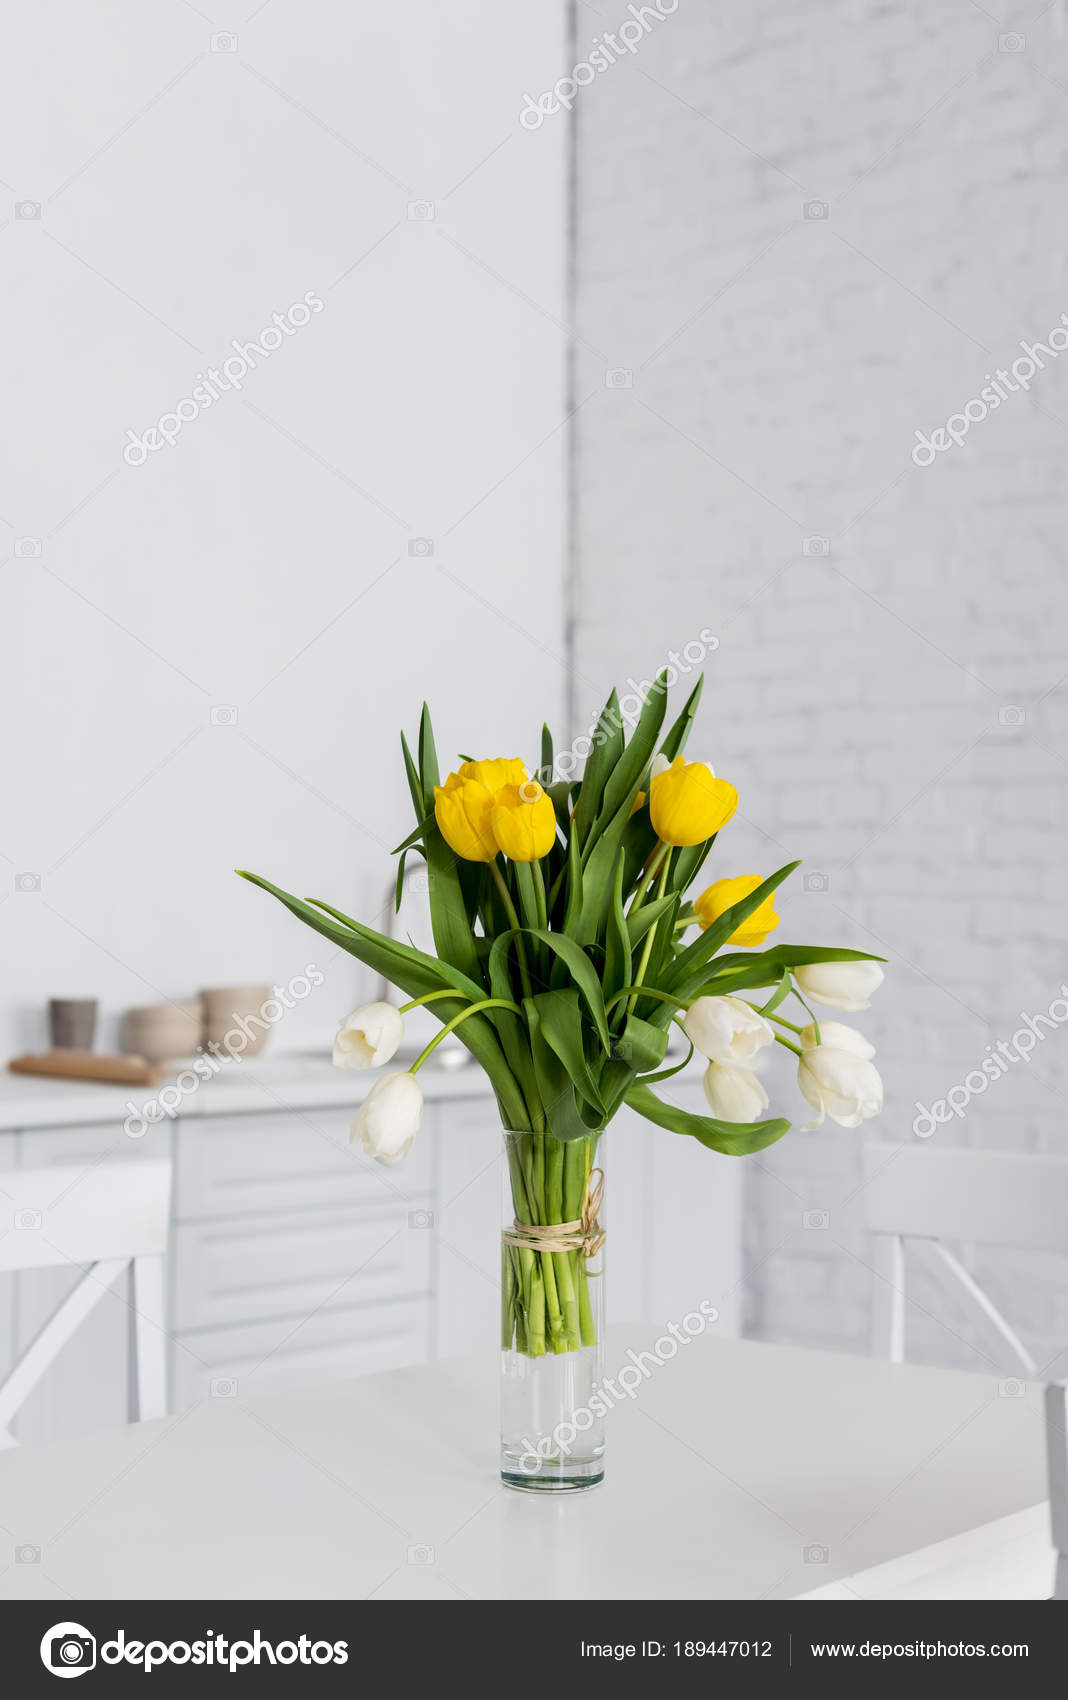 Beautiful Tulip Flowers Vase Table Modern Kitchen — Stock Photo ...